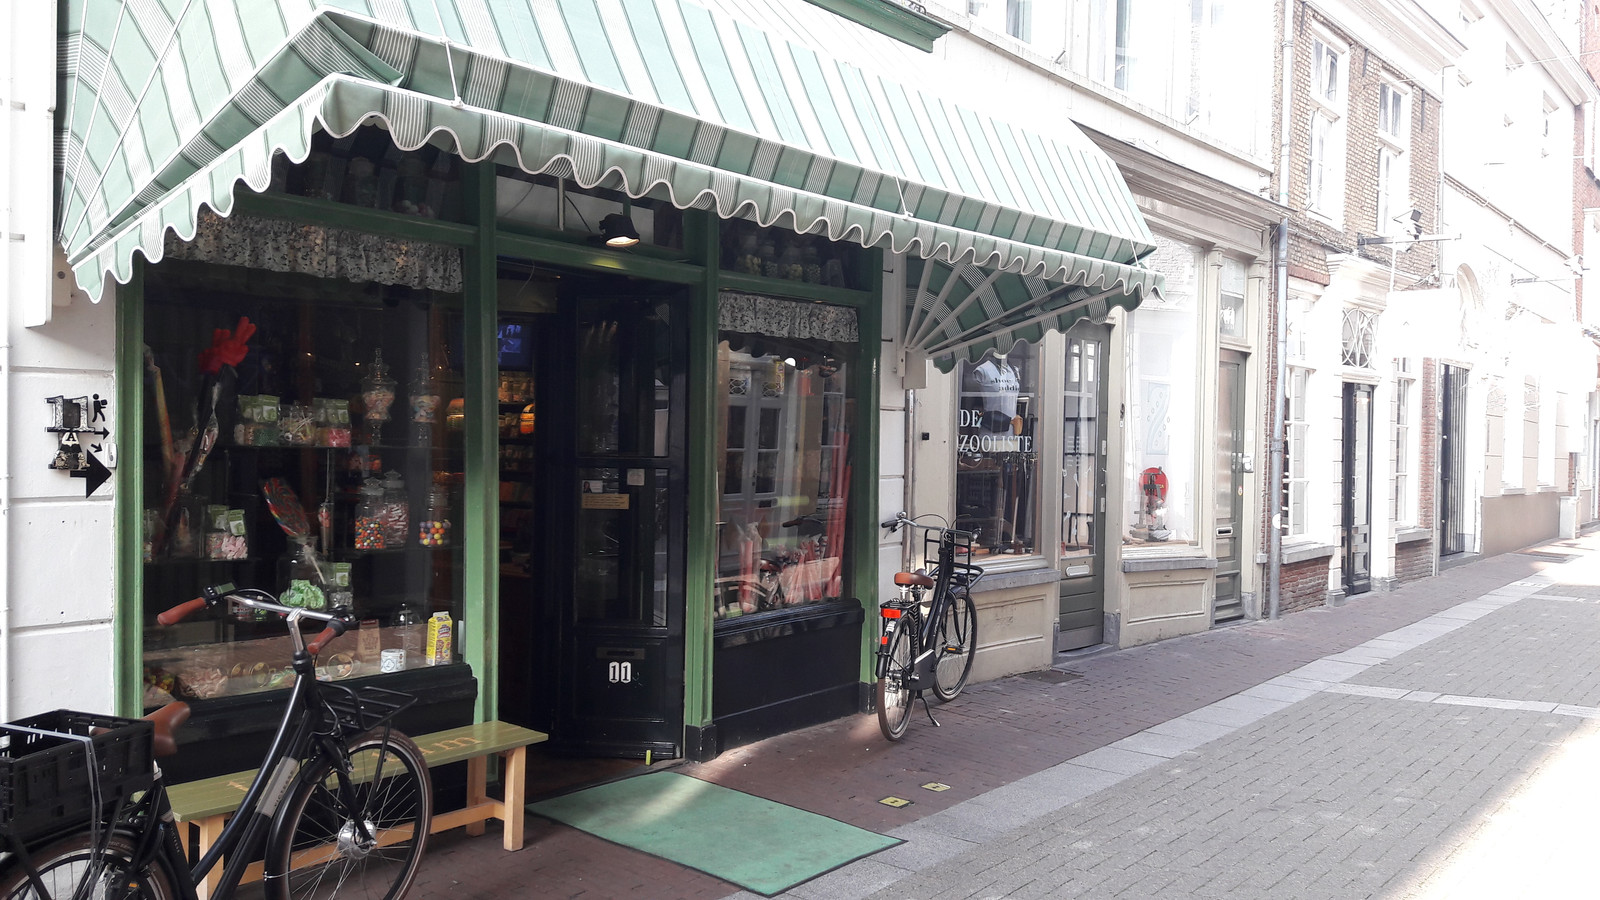 Tum Tum in de Ridderstraat